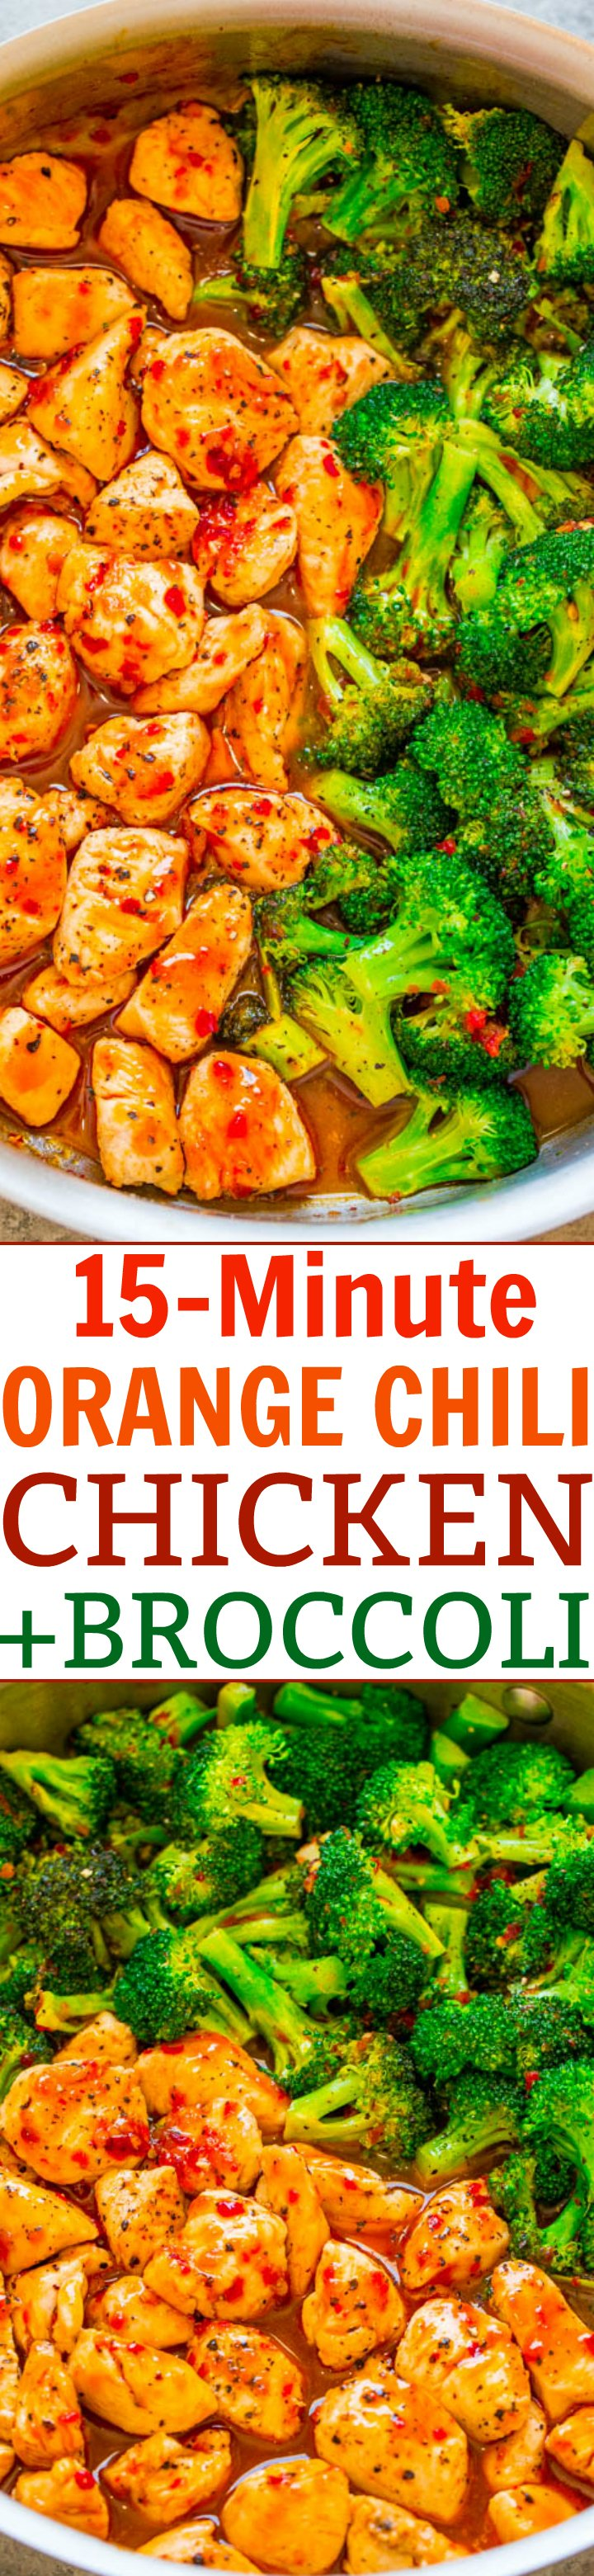 15-Minute Orange Chili Chicken and Broccoli - The orange chili sauce is spicy, tangy, and sweet all in one!! The PERFECT sauce to jazz up chicken and broccoli! A FAST and EASY dinner with great Asian FLAVOR!!